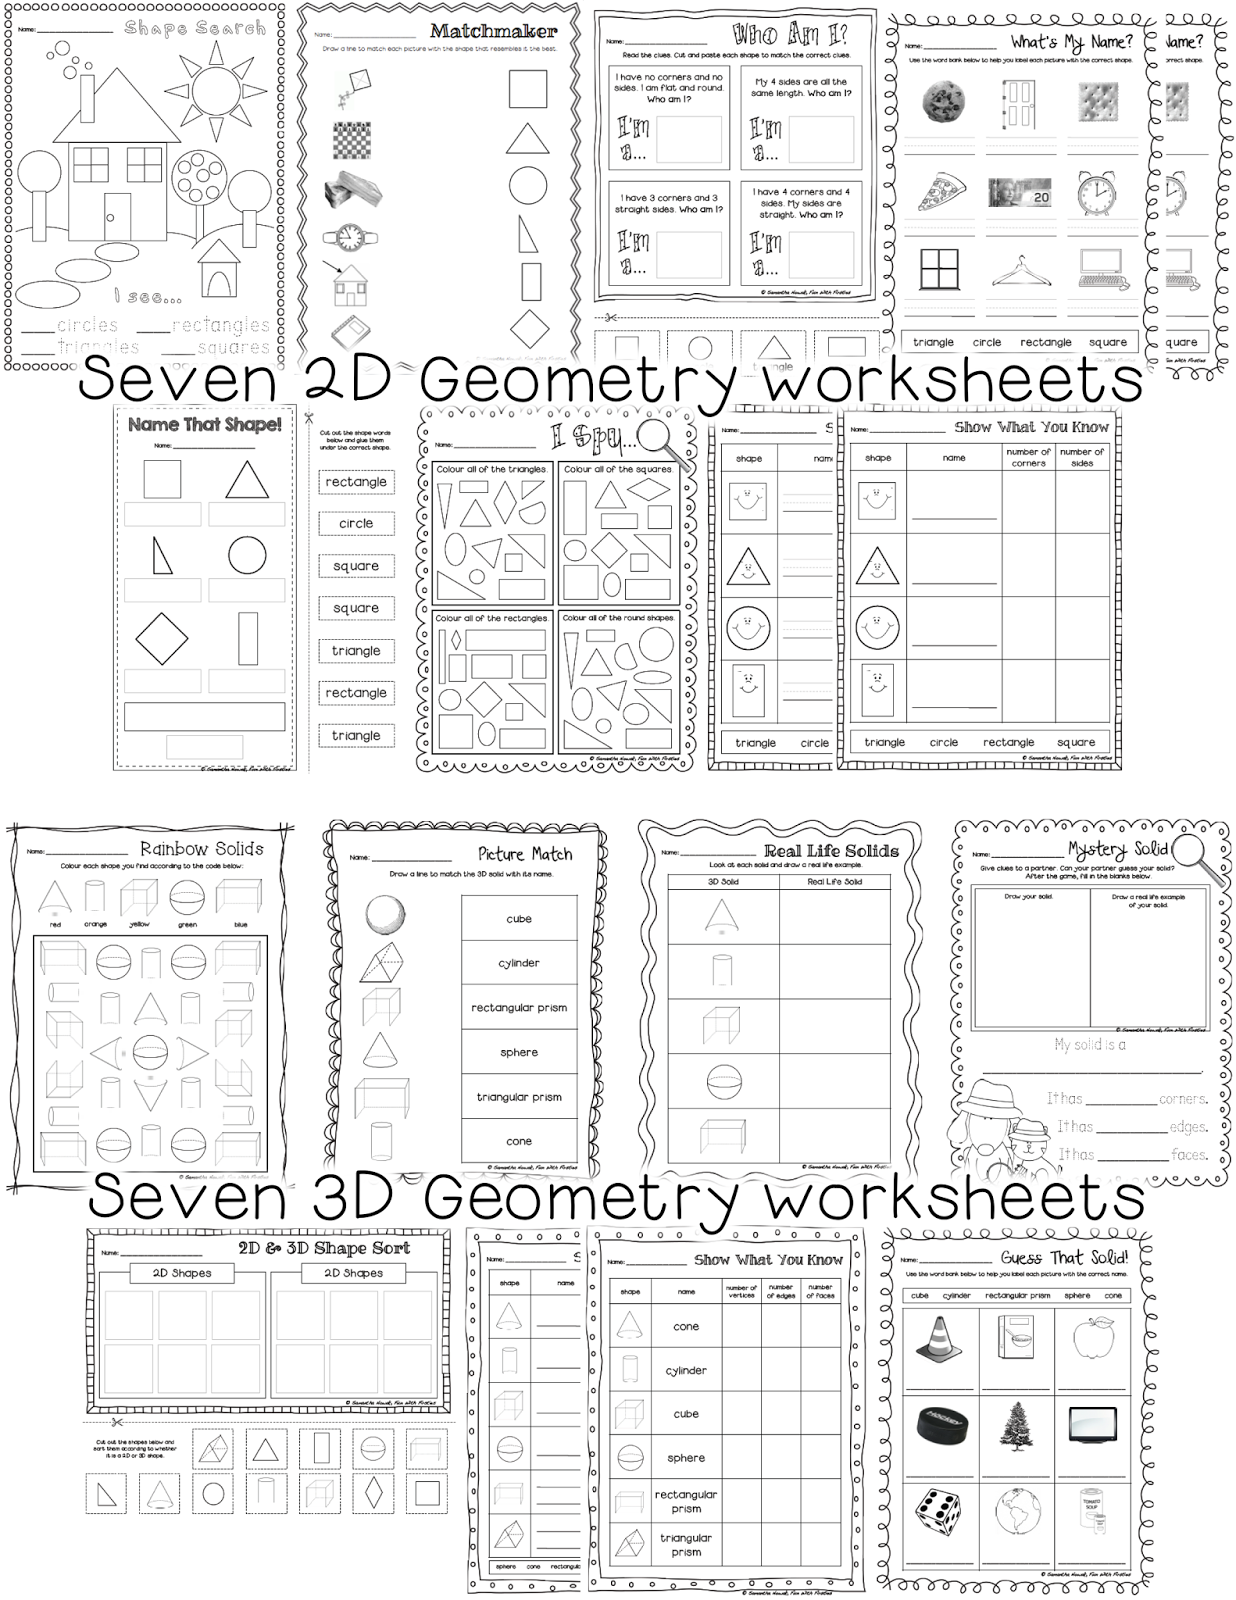 Did You Hear About Math Worksheet 3 10 Answer fun with firsties – Did You Hear About Math Worksheet